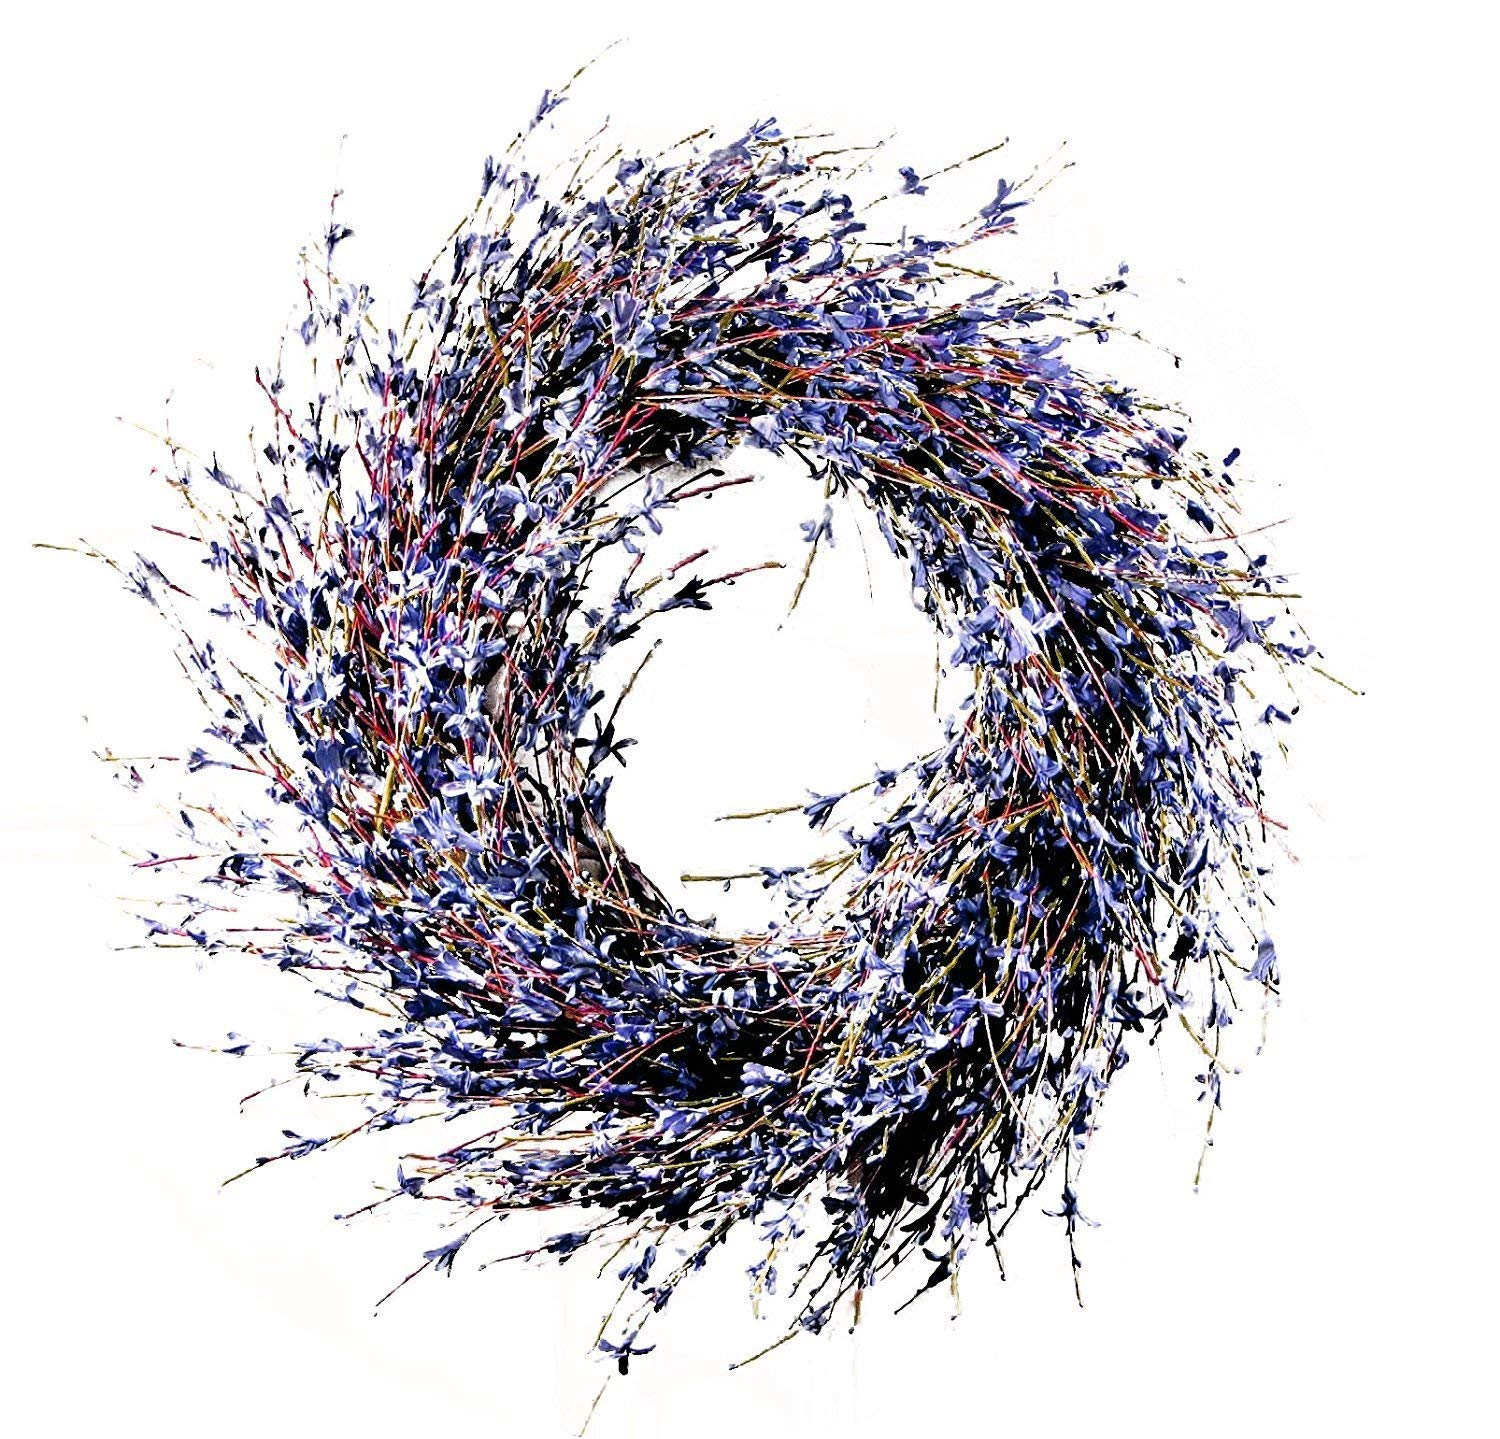 Charm & Chic Faux Dried Lavender Floral Door Wreath Natural for Fall Front Door or Indoor Home Decor